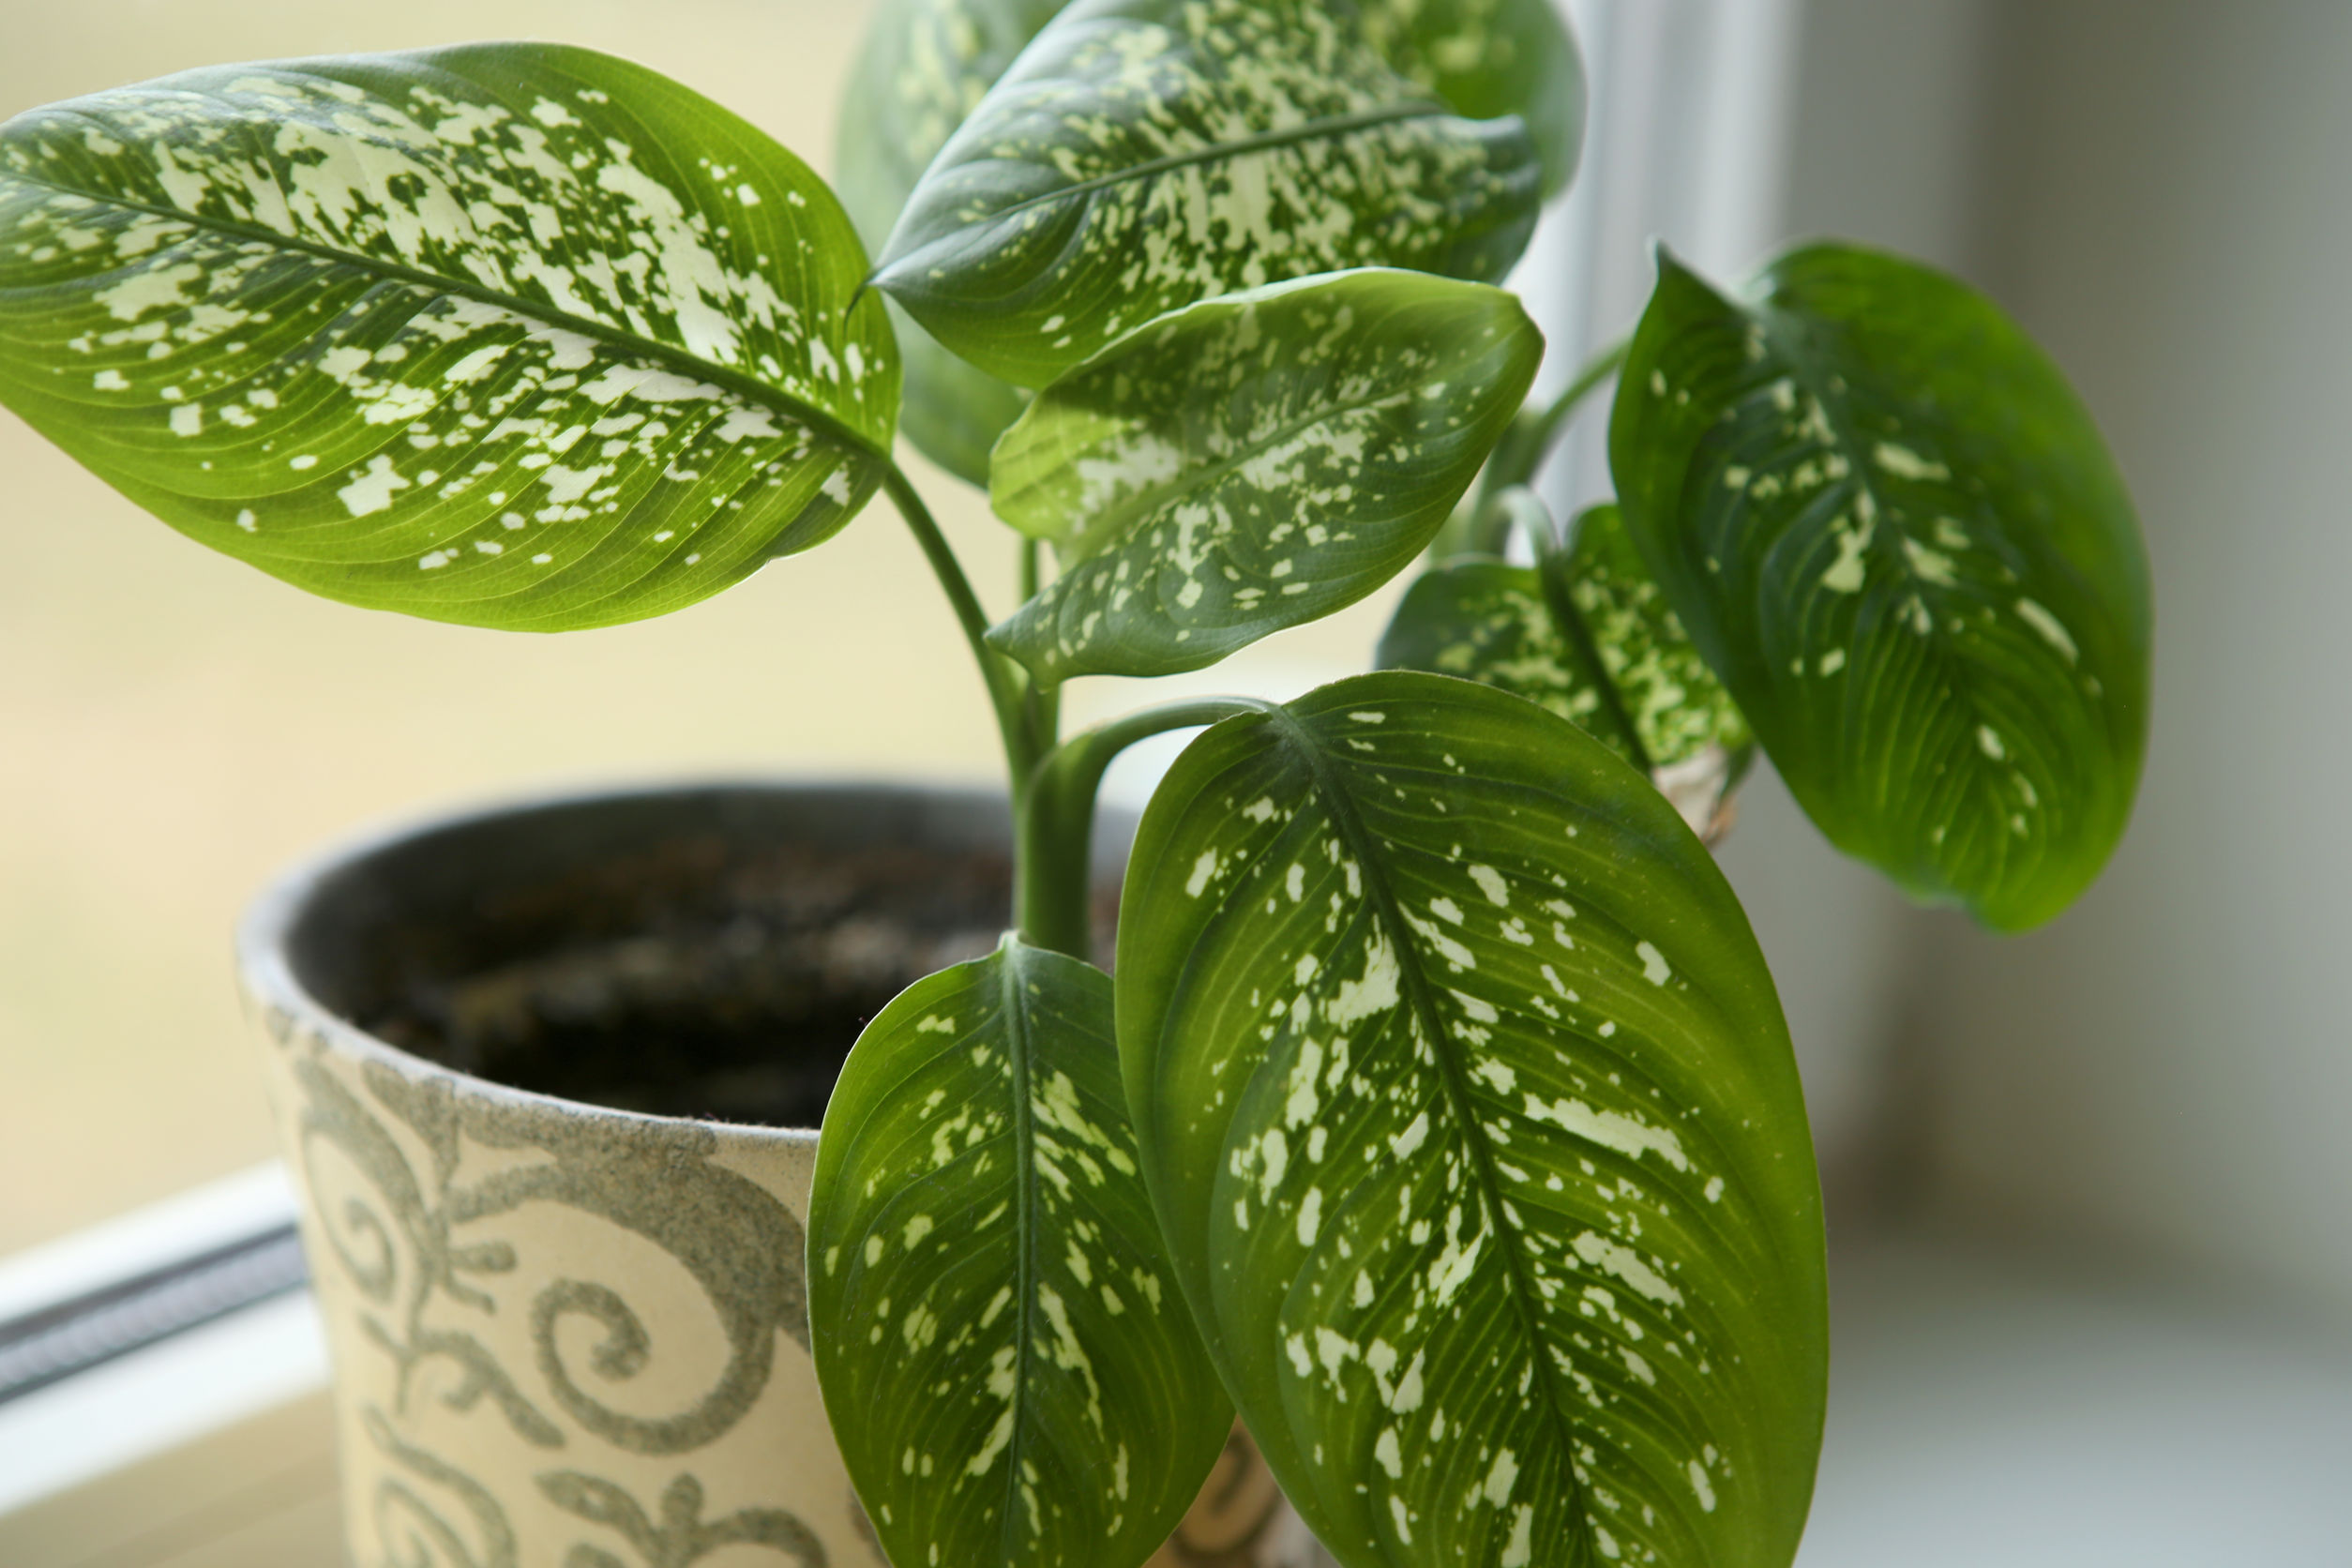 Dumb Cane (Dieffenbachia) can survive anywhere in the house, requires little care and thrives on little sunlight.